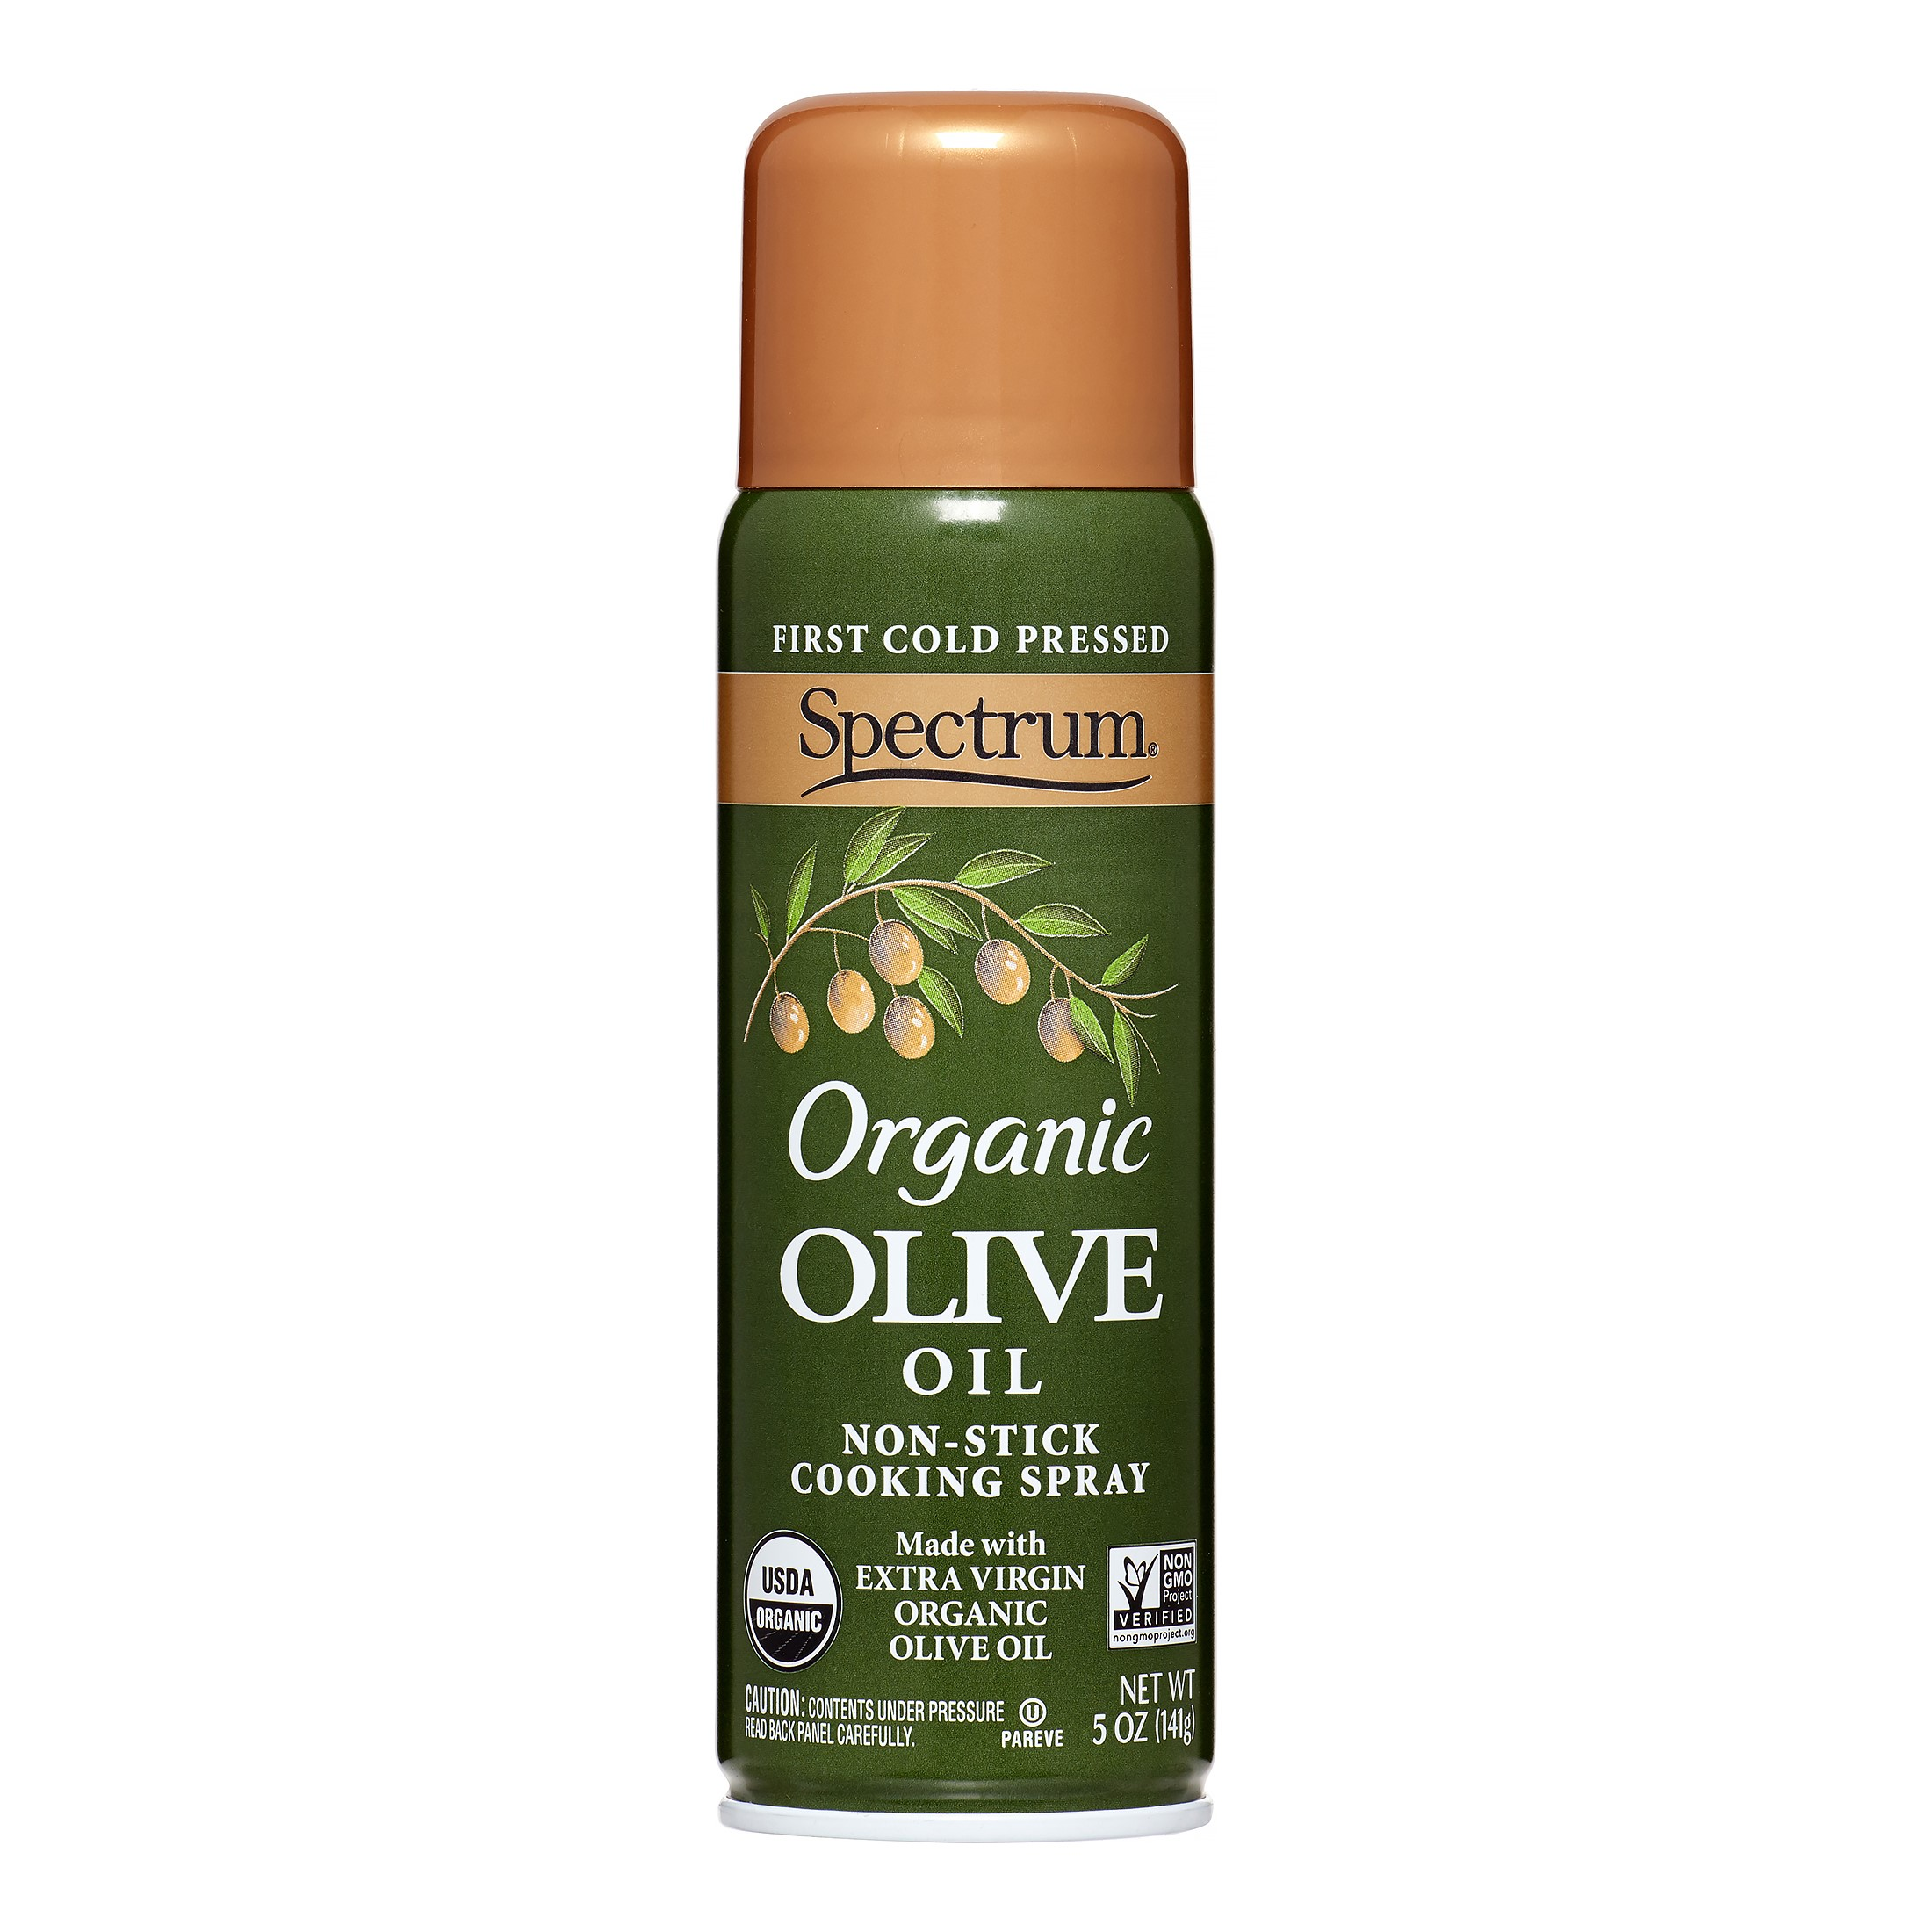 Spectrum Organic First Cold Pressed Olive Oil Cooking Spray, 5 Fl Oz